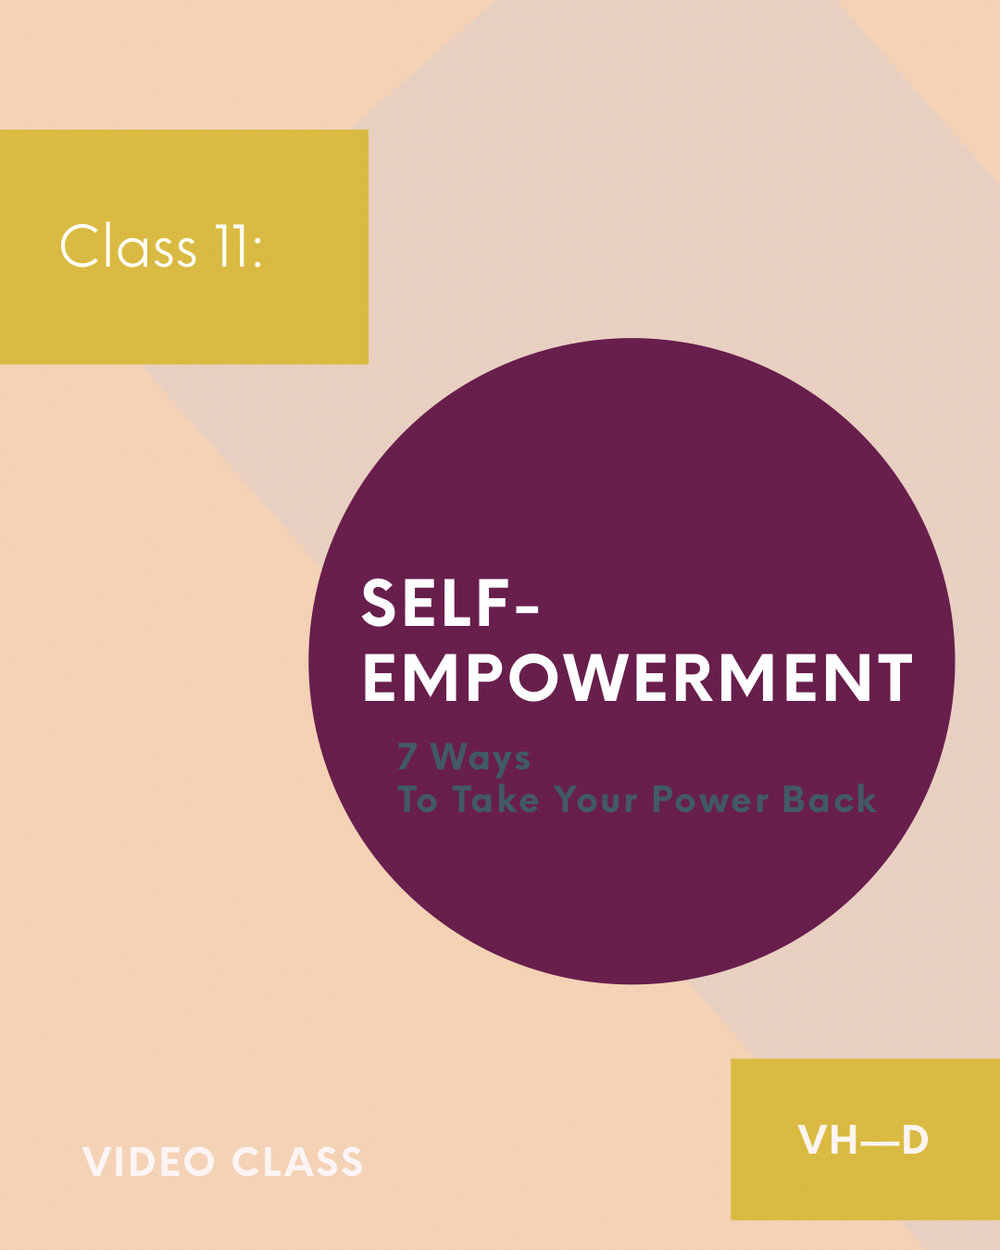 Self-Empowerment - 7 Essentials Ways to Take Your Power BackAre you living an empowered life?Dis-empowerment can cause negative thoughts, fears, blockages, doubts, pain, insecurities, circumstances, lower vibrations, and unhealthy subconscious-beliefs, to consume our lives, to keep us from living a fulfilling life, to keep us from reaching out higher potential, and from thriving in life; if we allow them to.In class 11, we'll cover 7 essentials ways to put Self-Empowerment into practice and full-effect. Let's thrive in, and through, life!